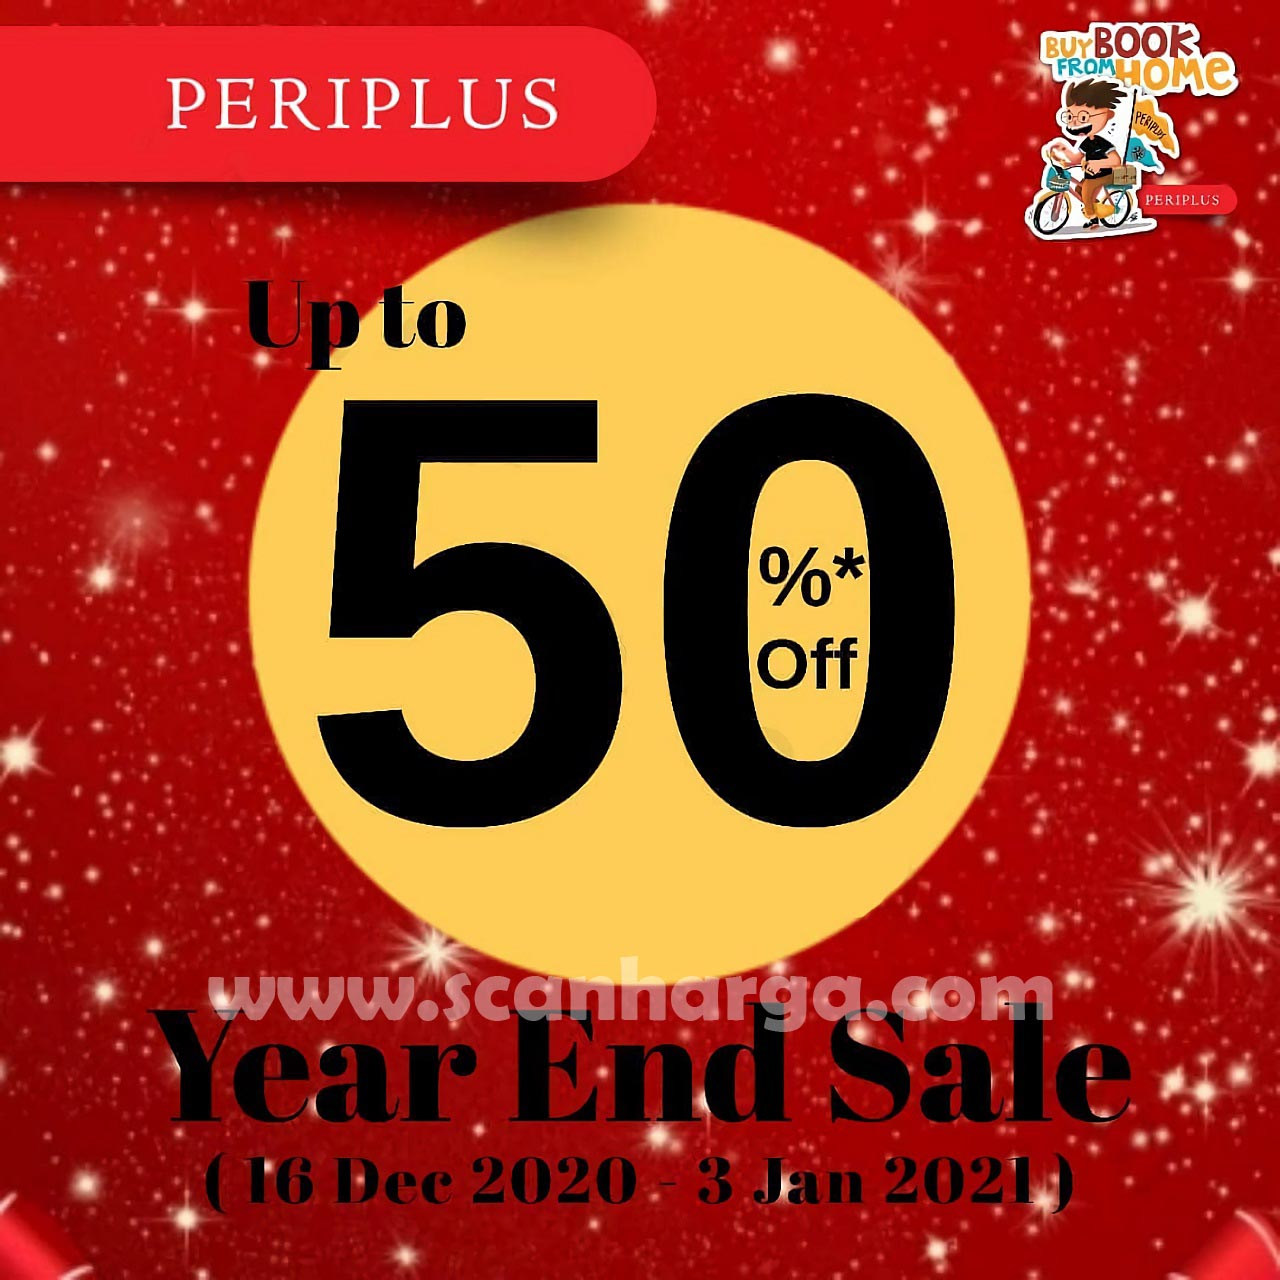 Promo PERIPLUS Year End SALE Discount Up To 50% Off